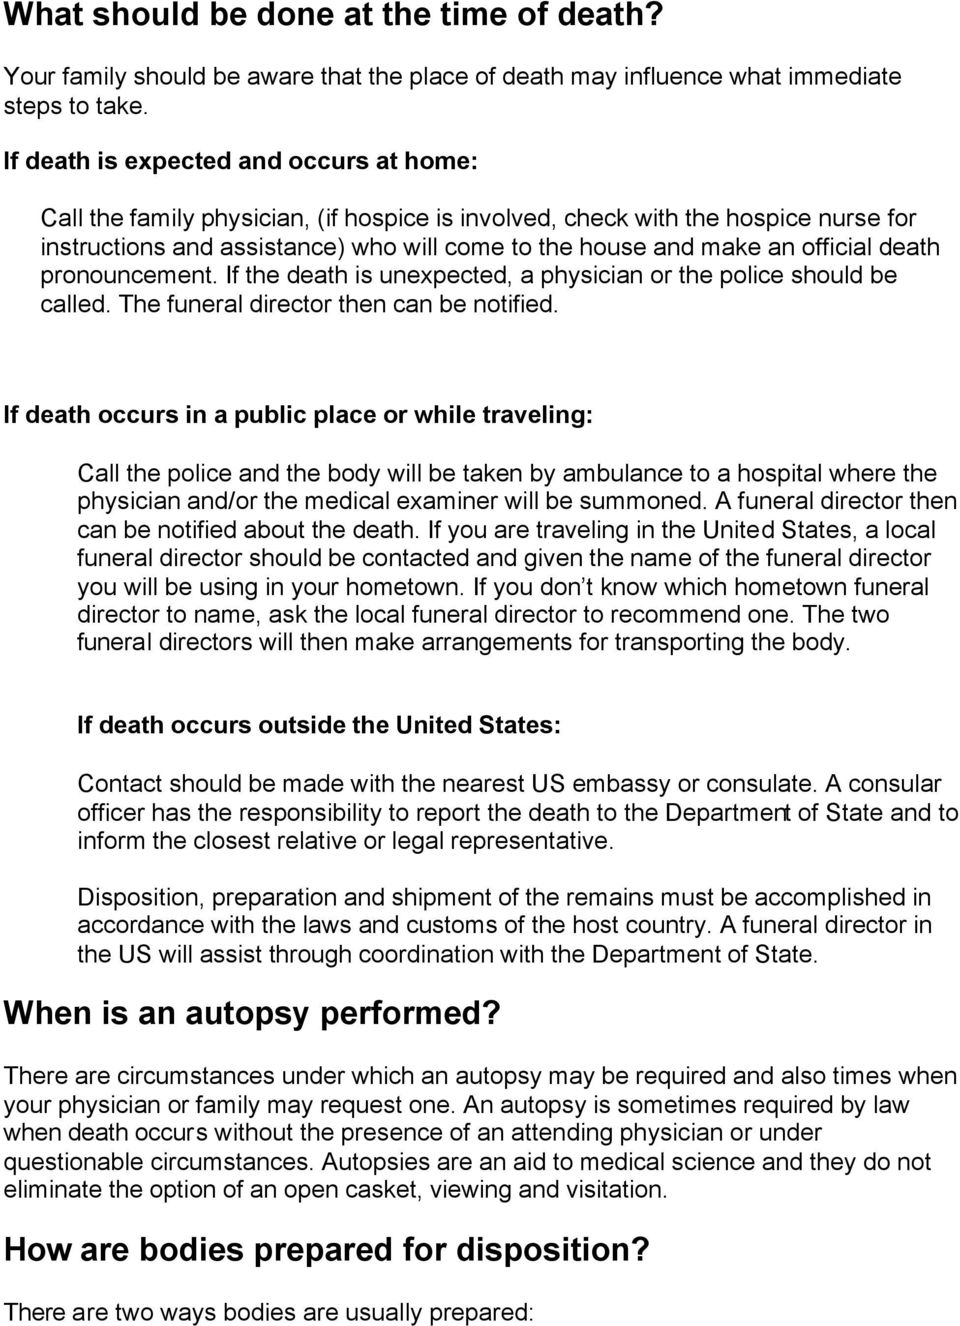 official death pronouncement. If the death is unexpected, a physician or the police should be called. The funeral director then can be notified.